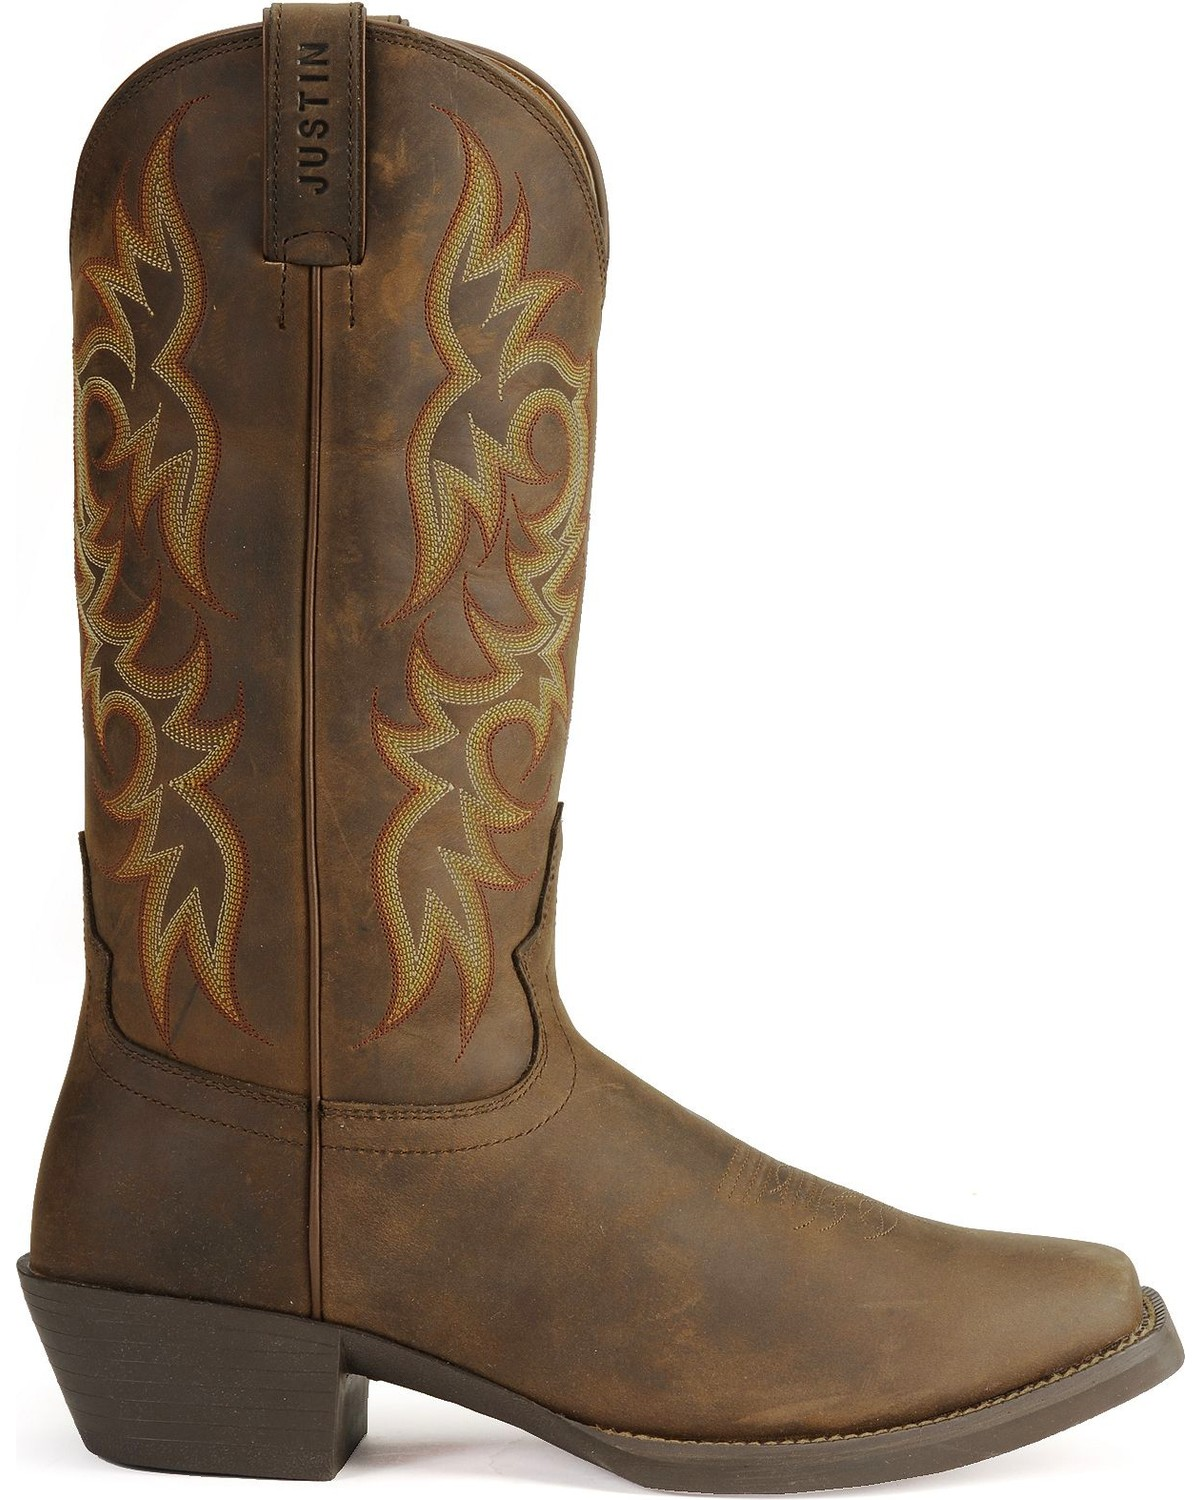 b765c6749d474 Justin Stampede Western Apache Cowboy Boots - Square Toe - Country ...